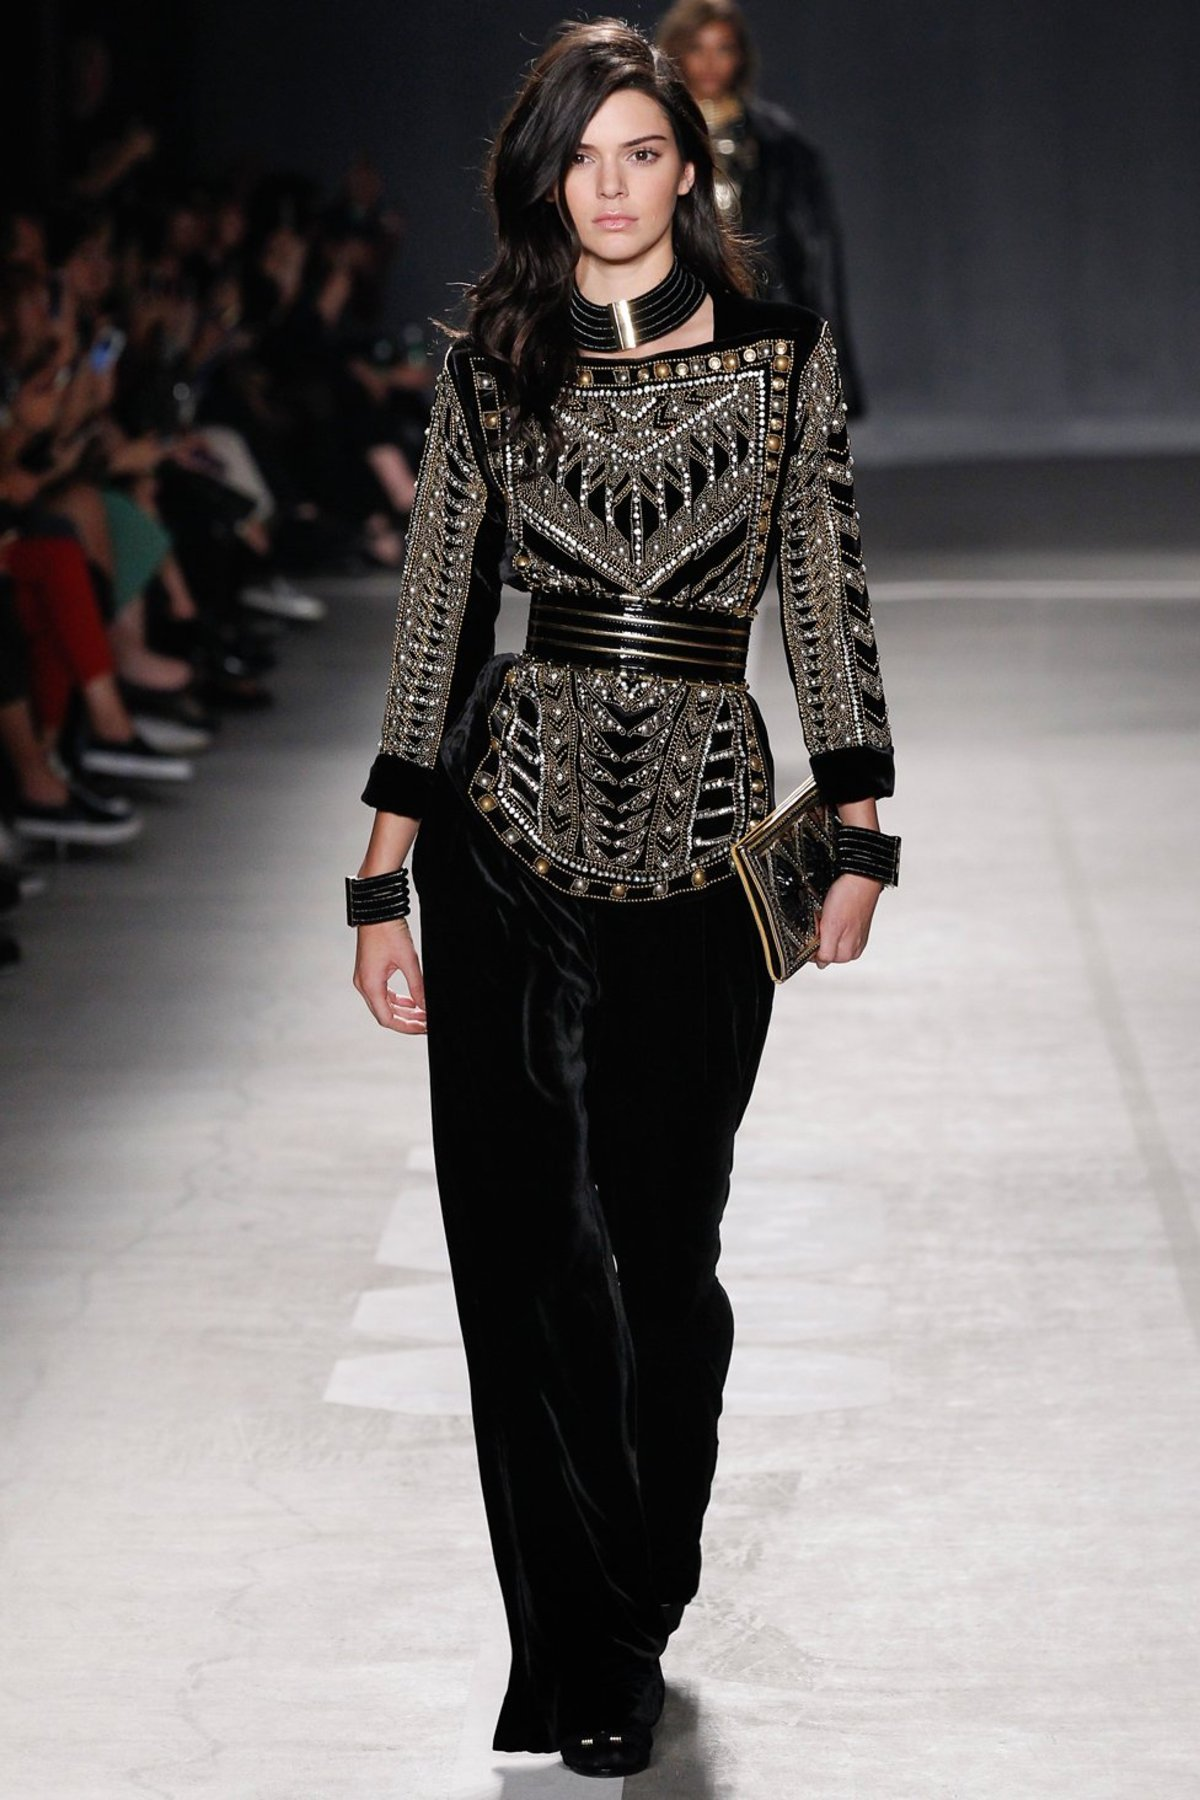 h-and-m-balmain-runway-fall-2016-01